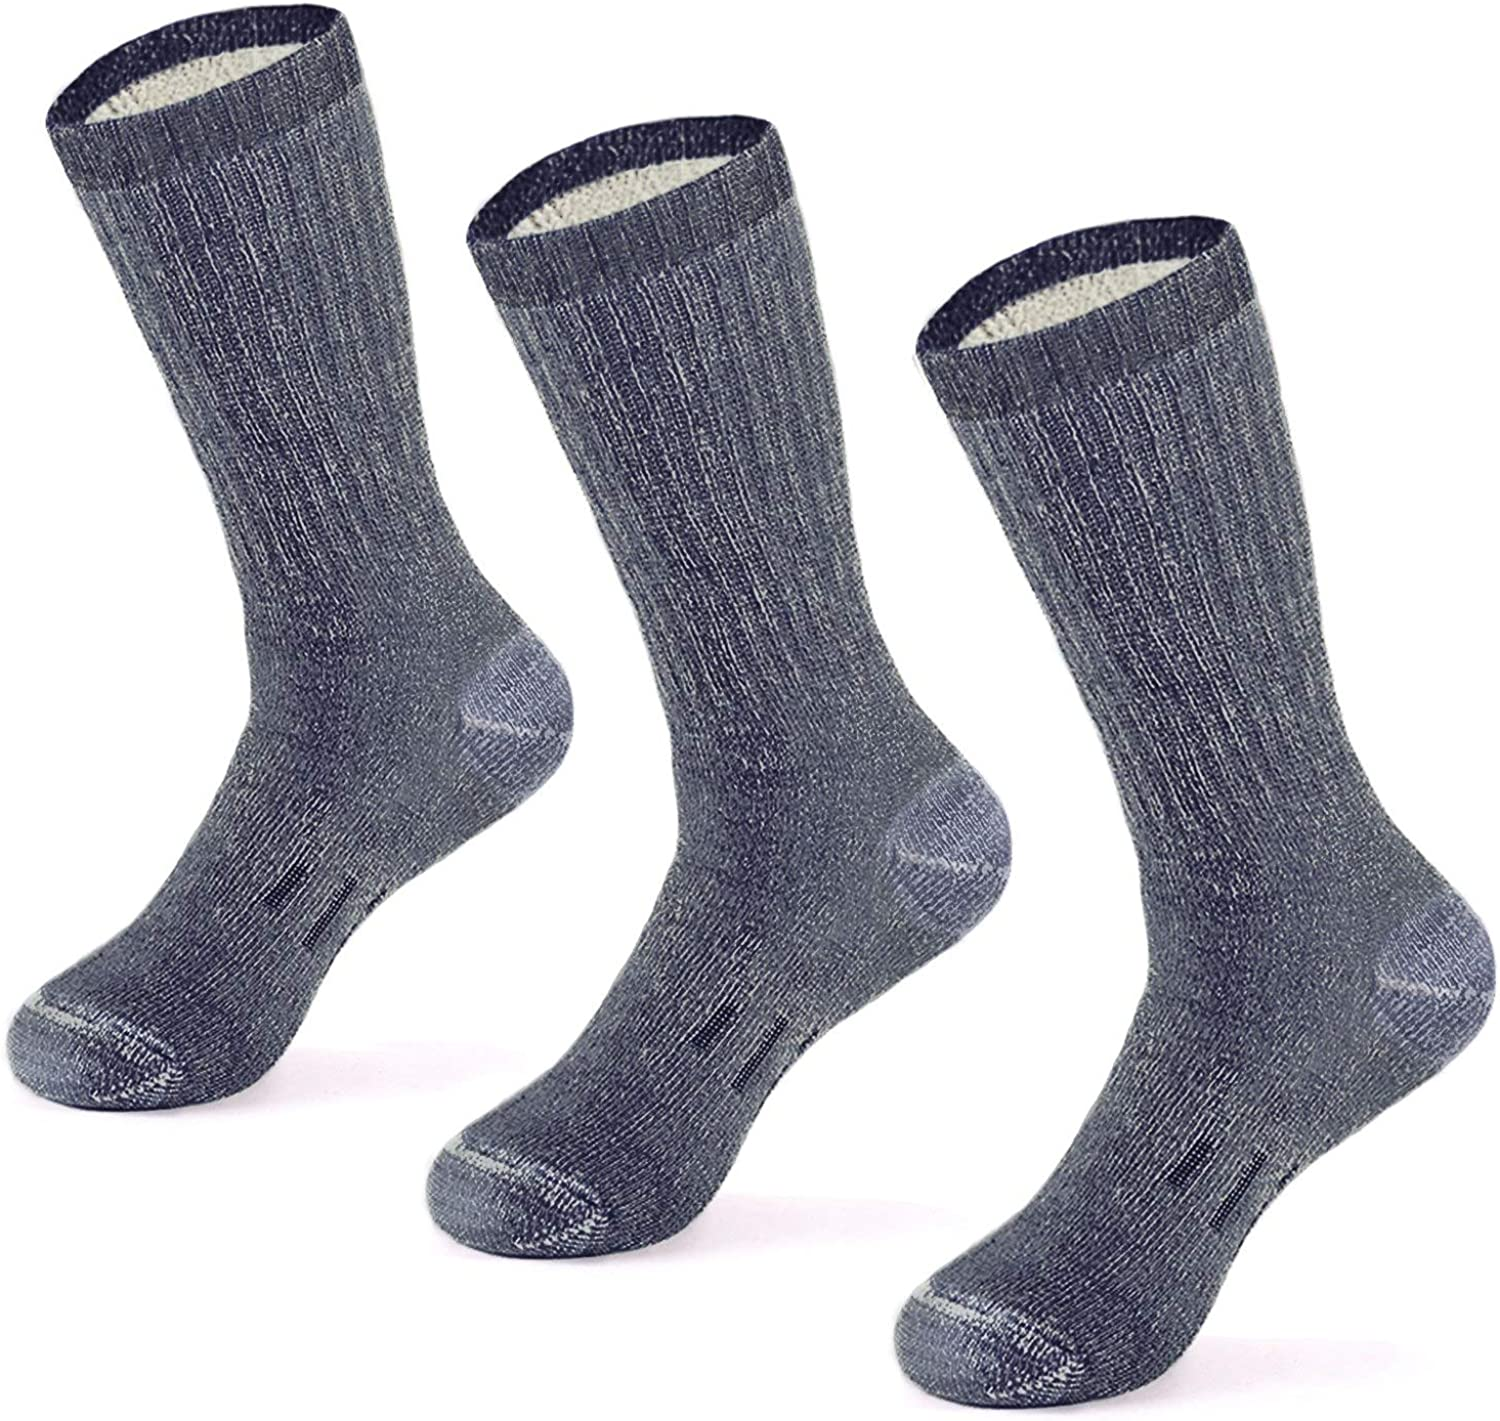 MERIWOOL Merino Wool Hiking Socks for Men and Women – 3 Pairs Midweight Cushioned – Warm n Breathable